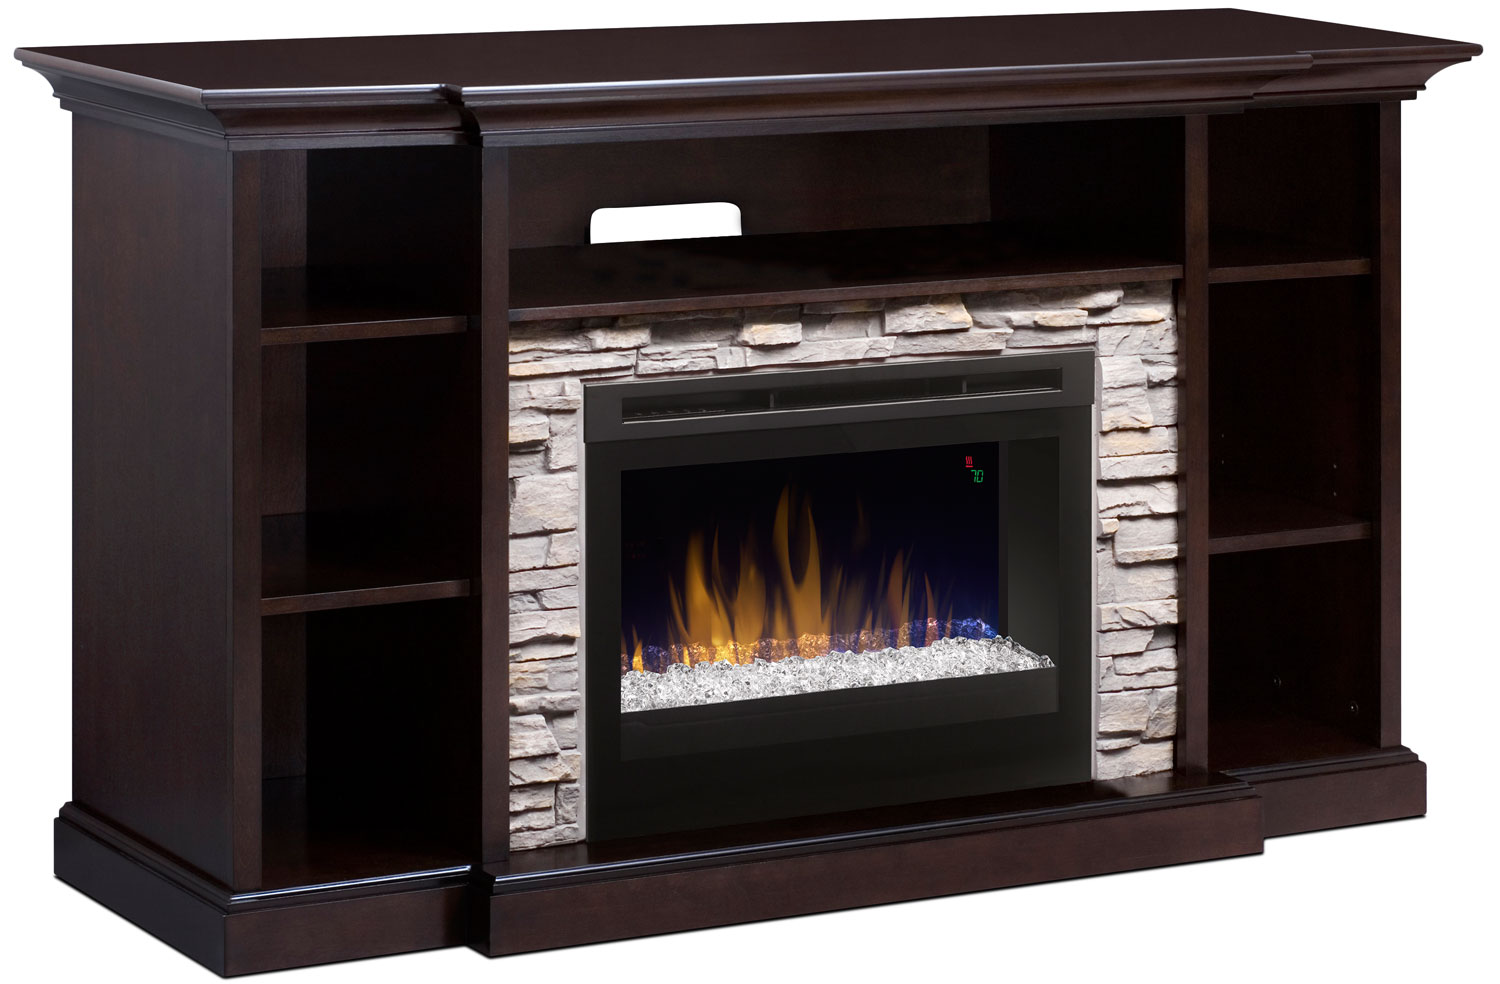 "Courtyard 64"" TV Stand with Glass Ember Firebox"